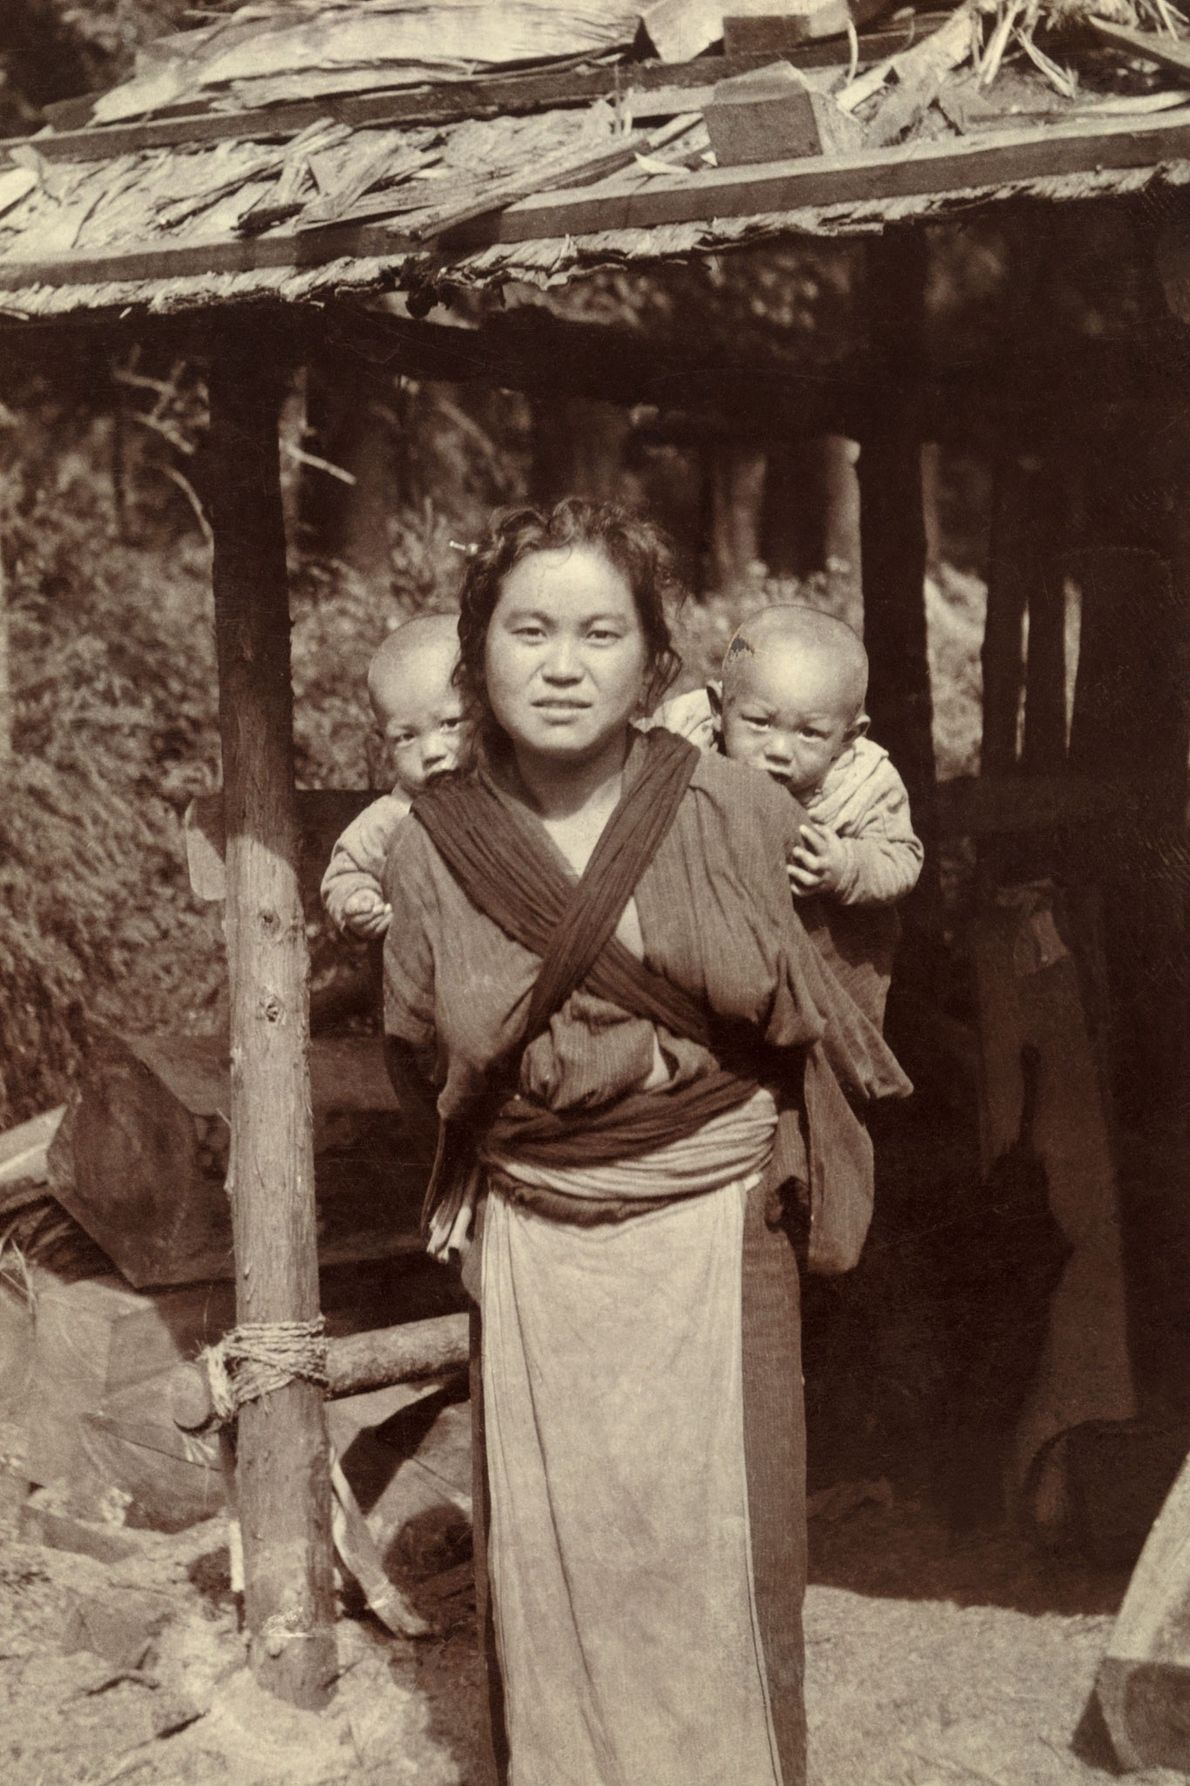 A Japanese woman carries her twins on her back with a cross wrap.